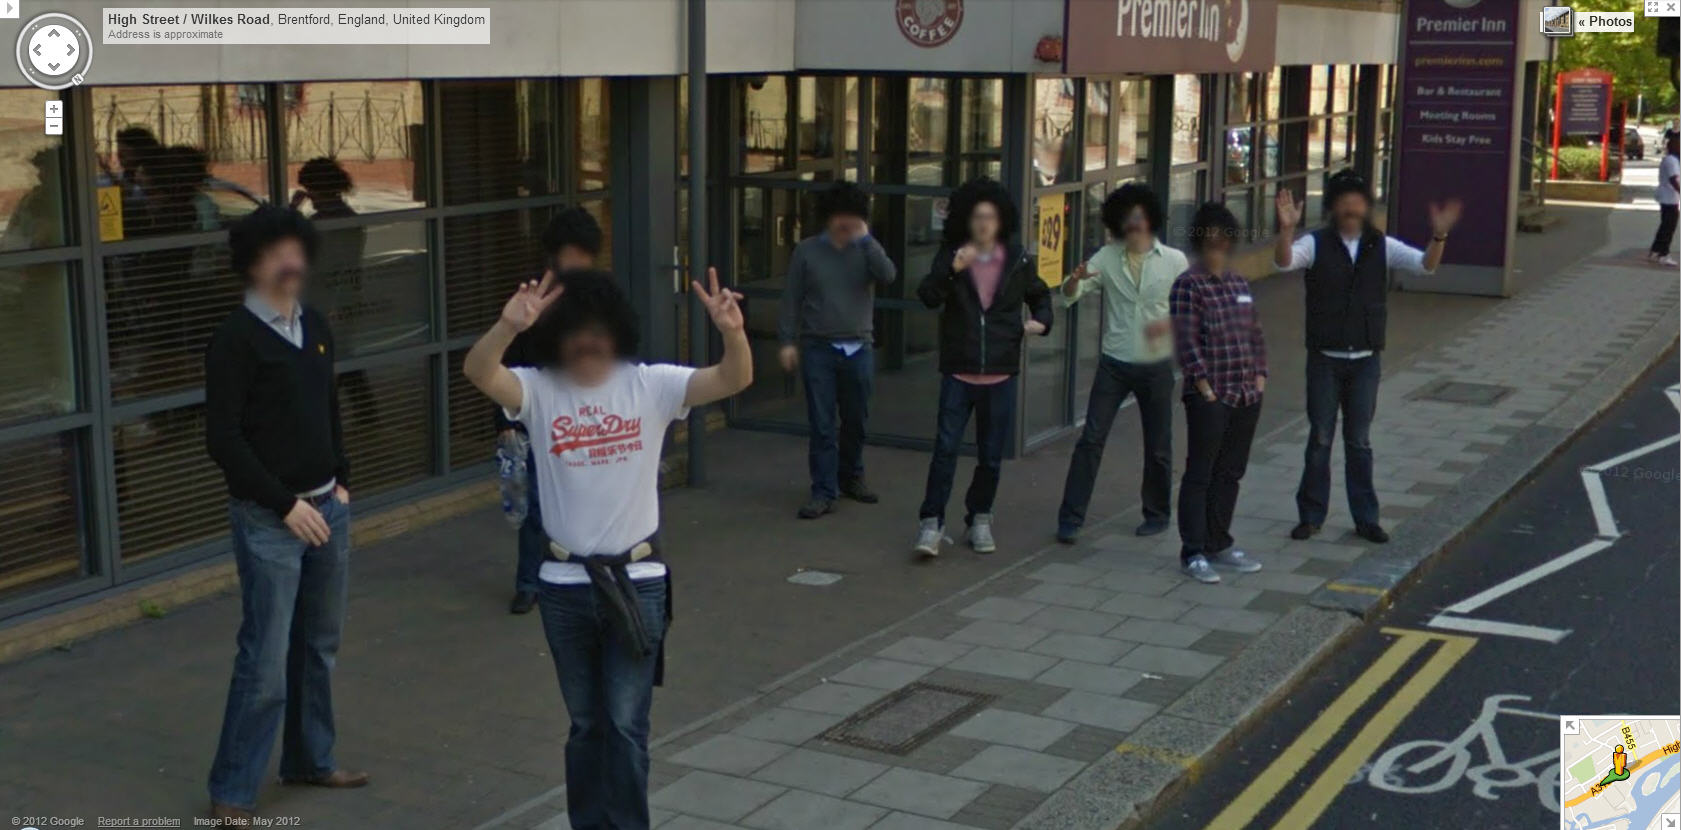 Google Street View Uk Captures A Bunch Of Guys With Afros And